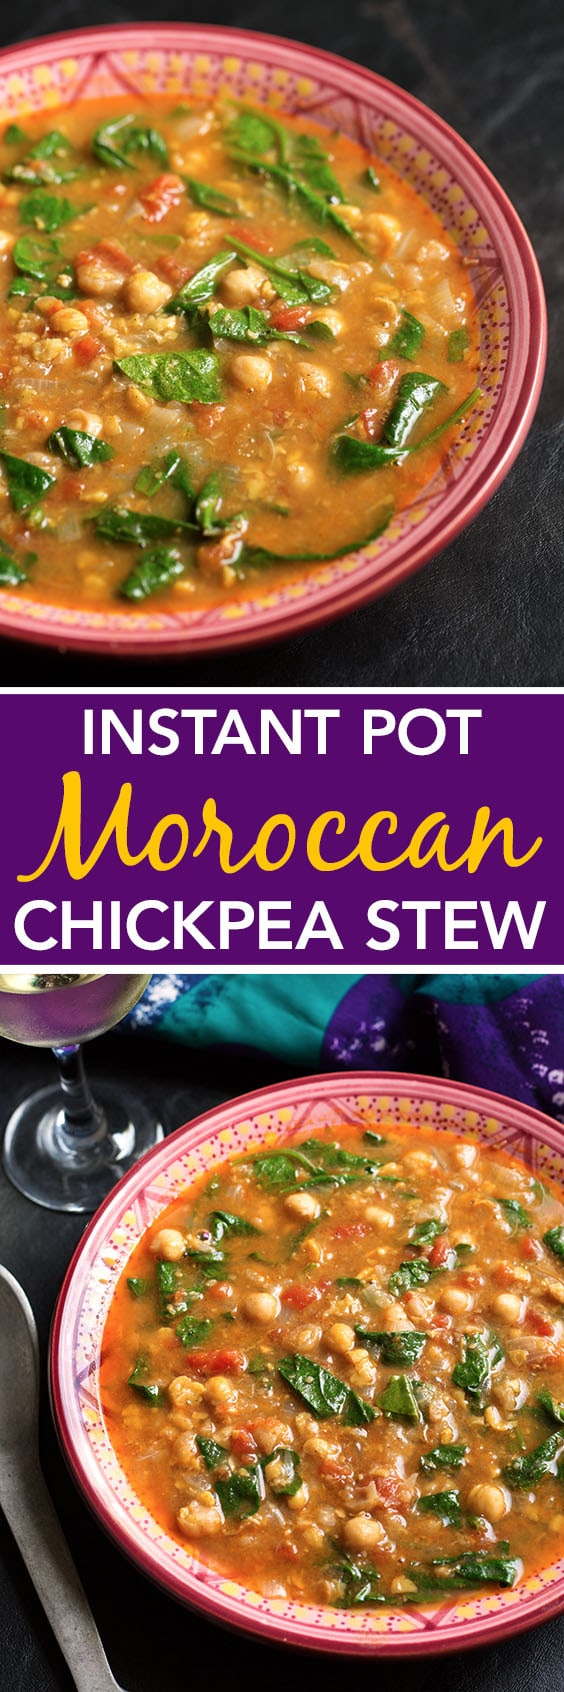 Instant Pot Moroccan Chickpea Stew tastes amazing! Easy and inexpensive to make and so healthy! simplyhappyfoodie.com #instantpotrecipes #instantpotchickpeas #instantpotchickpeastew